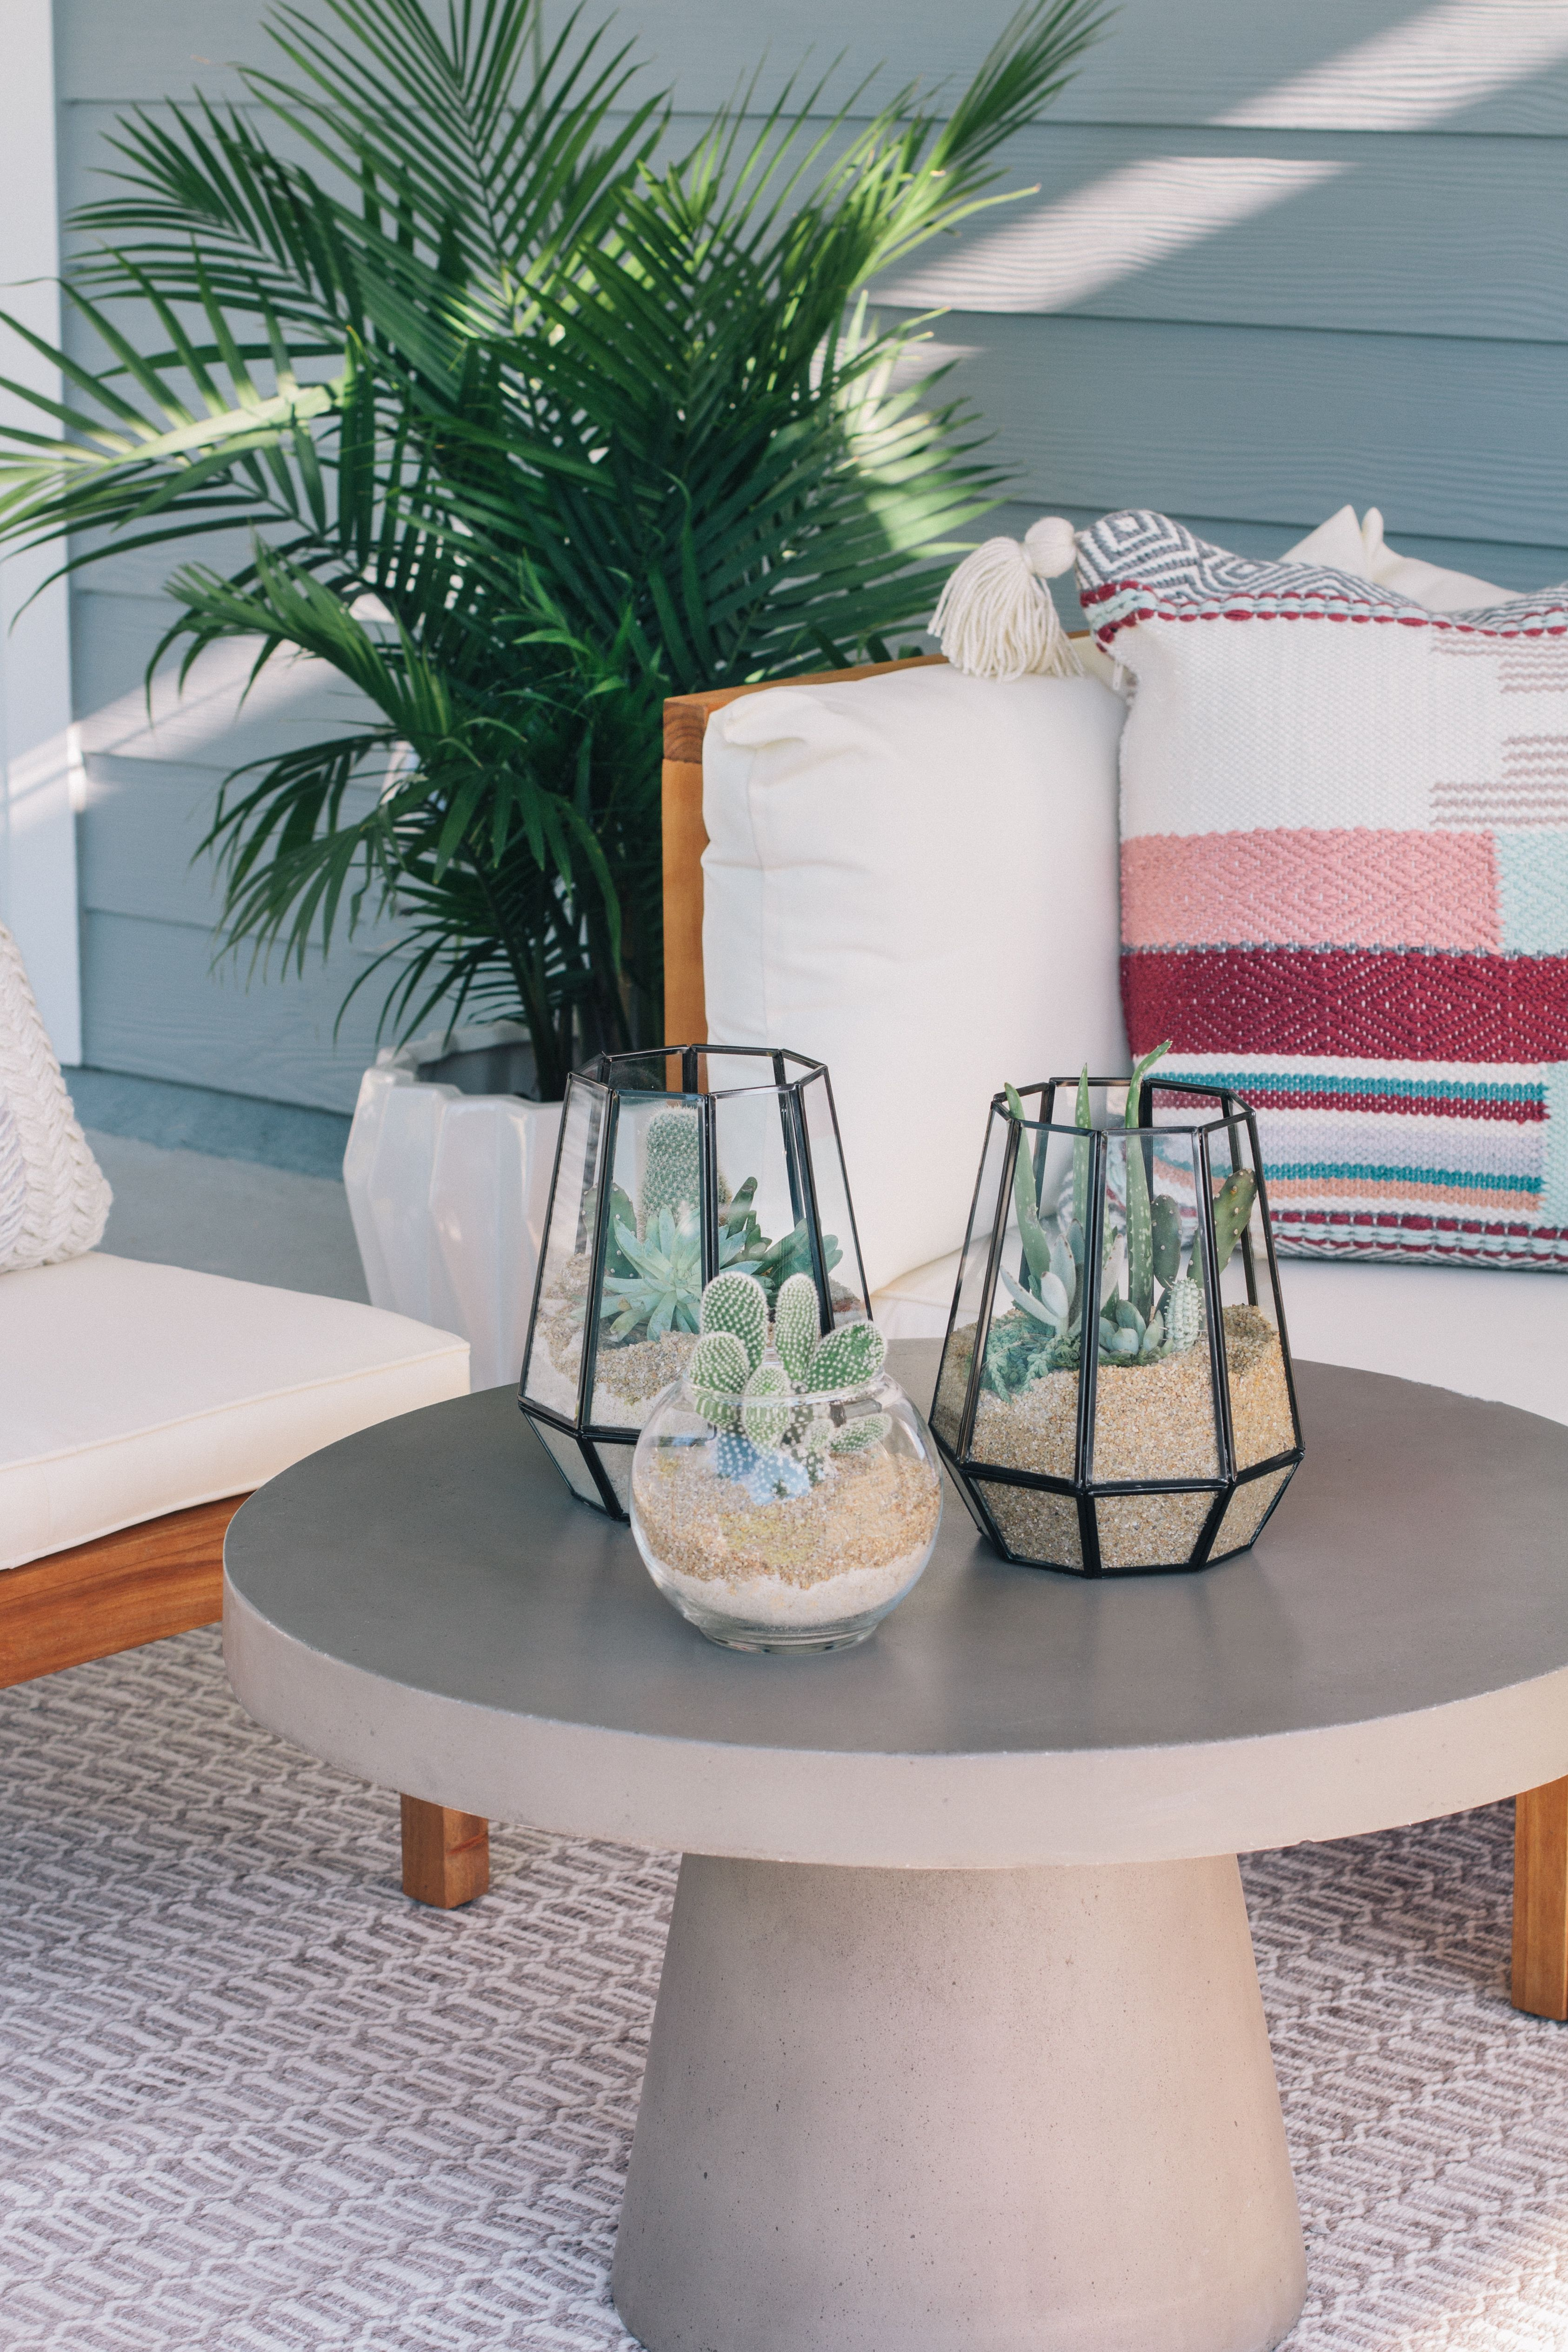 Diy Done Outdoor Terrarium For Your Patio Hunker Diy Outdoor Candle Holders Diy Patio Table Outdoor Candle Holders [ 5056 x 3371 Pixel ]